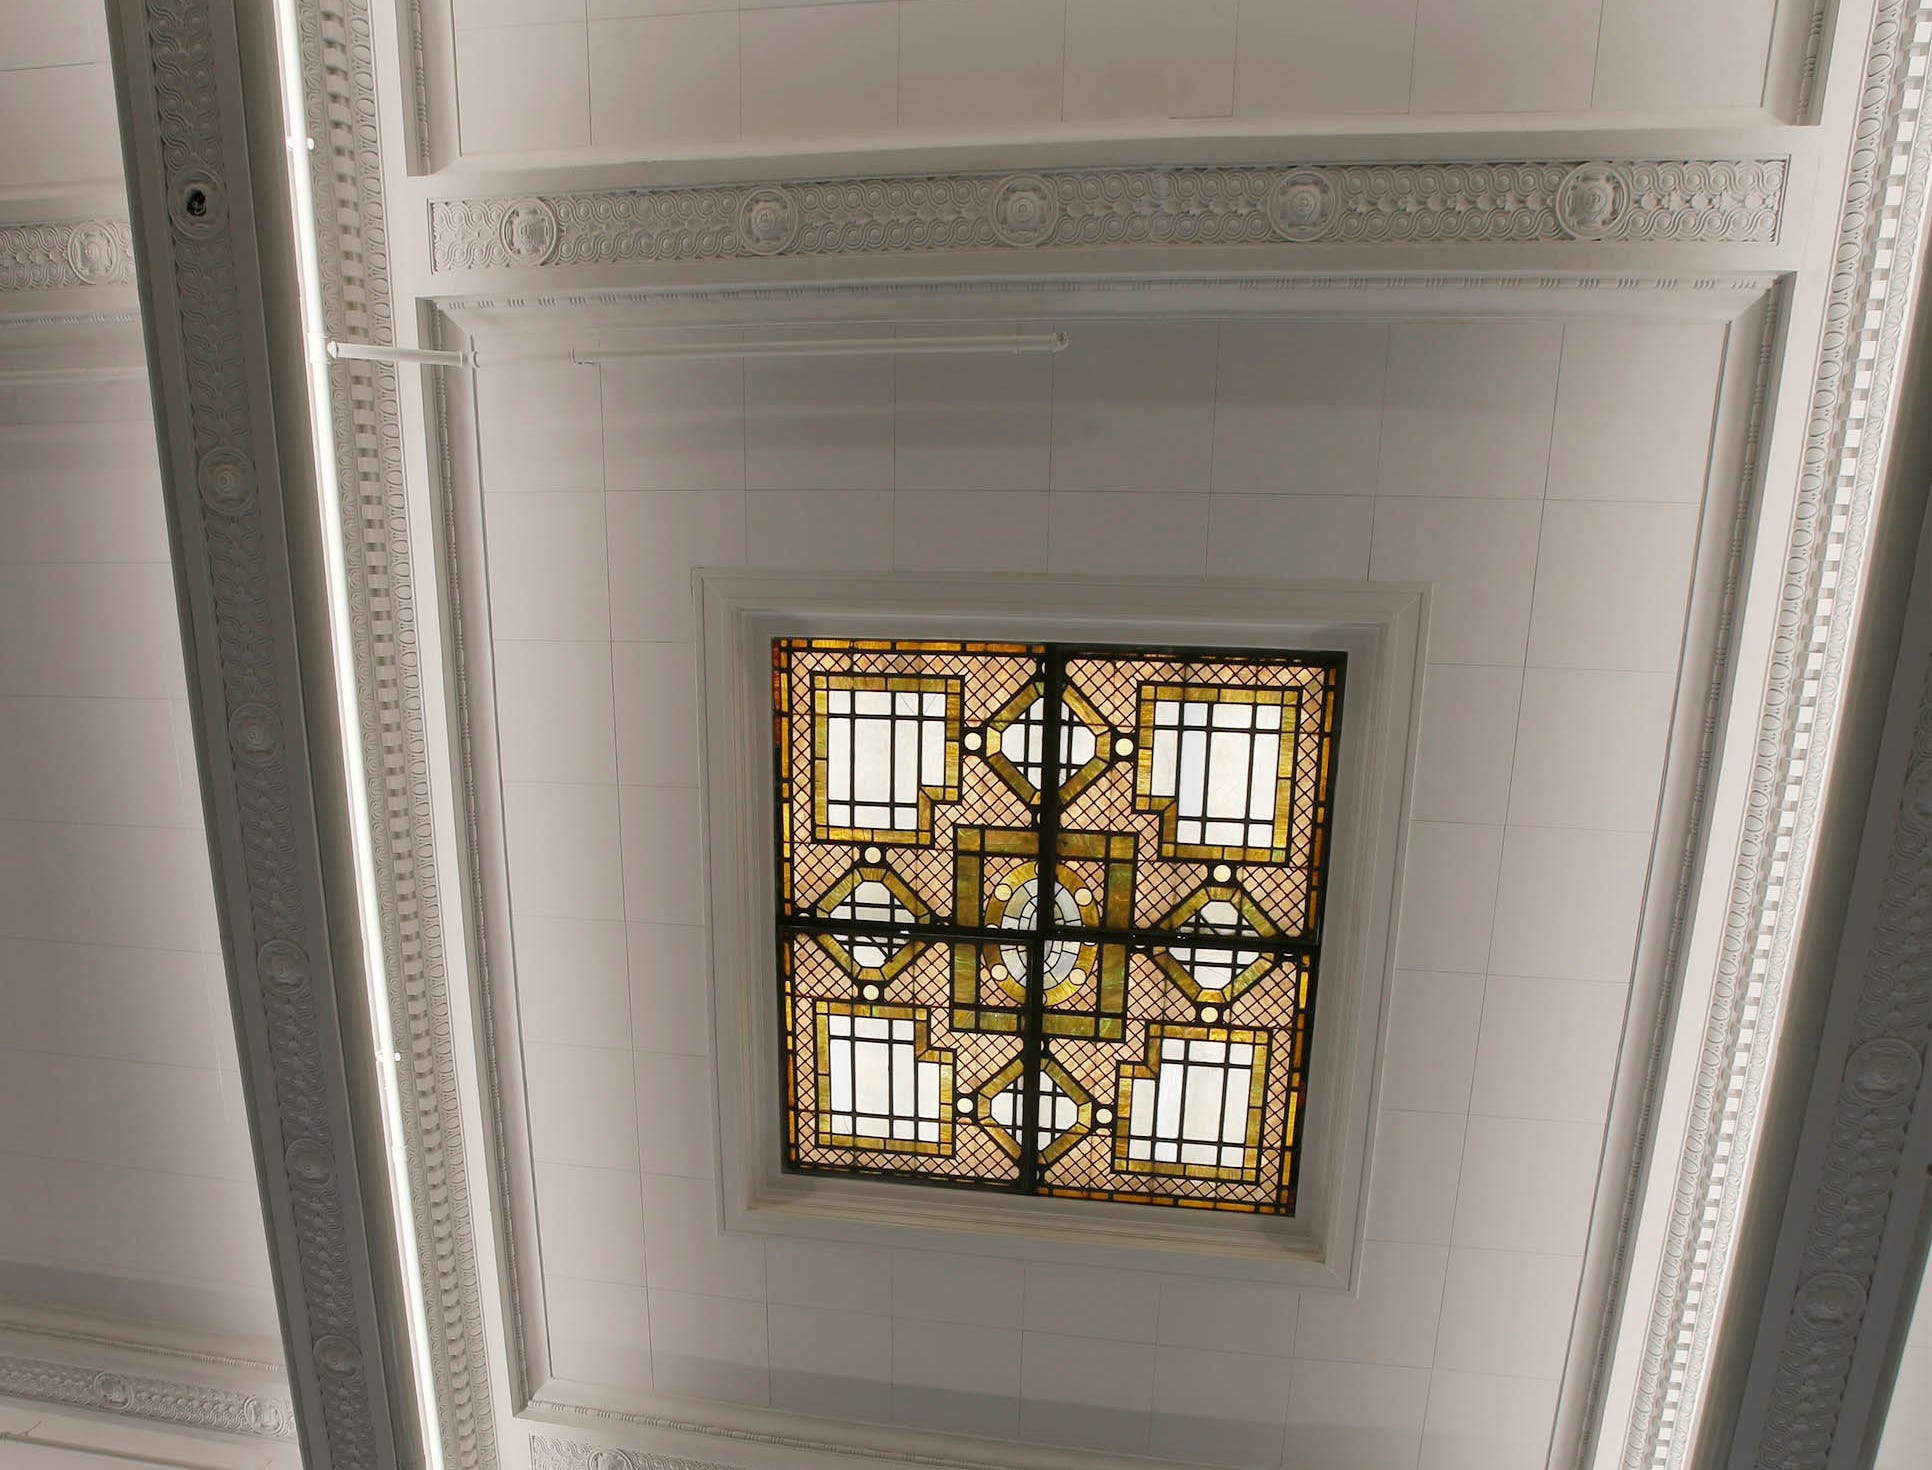 The stained-glass panel was hidden for years in Sheboygan City Council Chambers is now visible as seen, Tuesday, May 7, 2019, in Sheboygan, Wis.  Originally the panel was illuminated by natural light, but today lights illuminate the special feature.